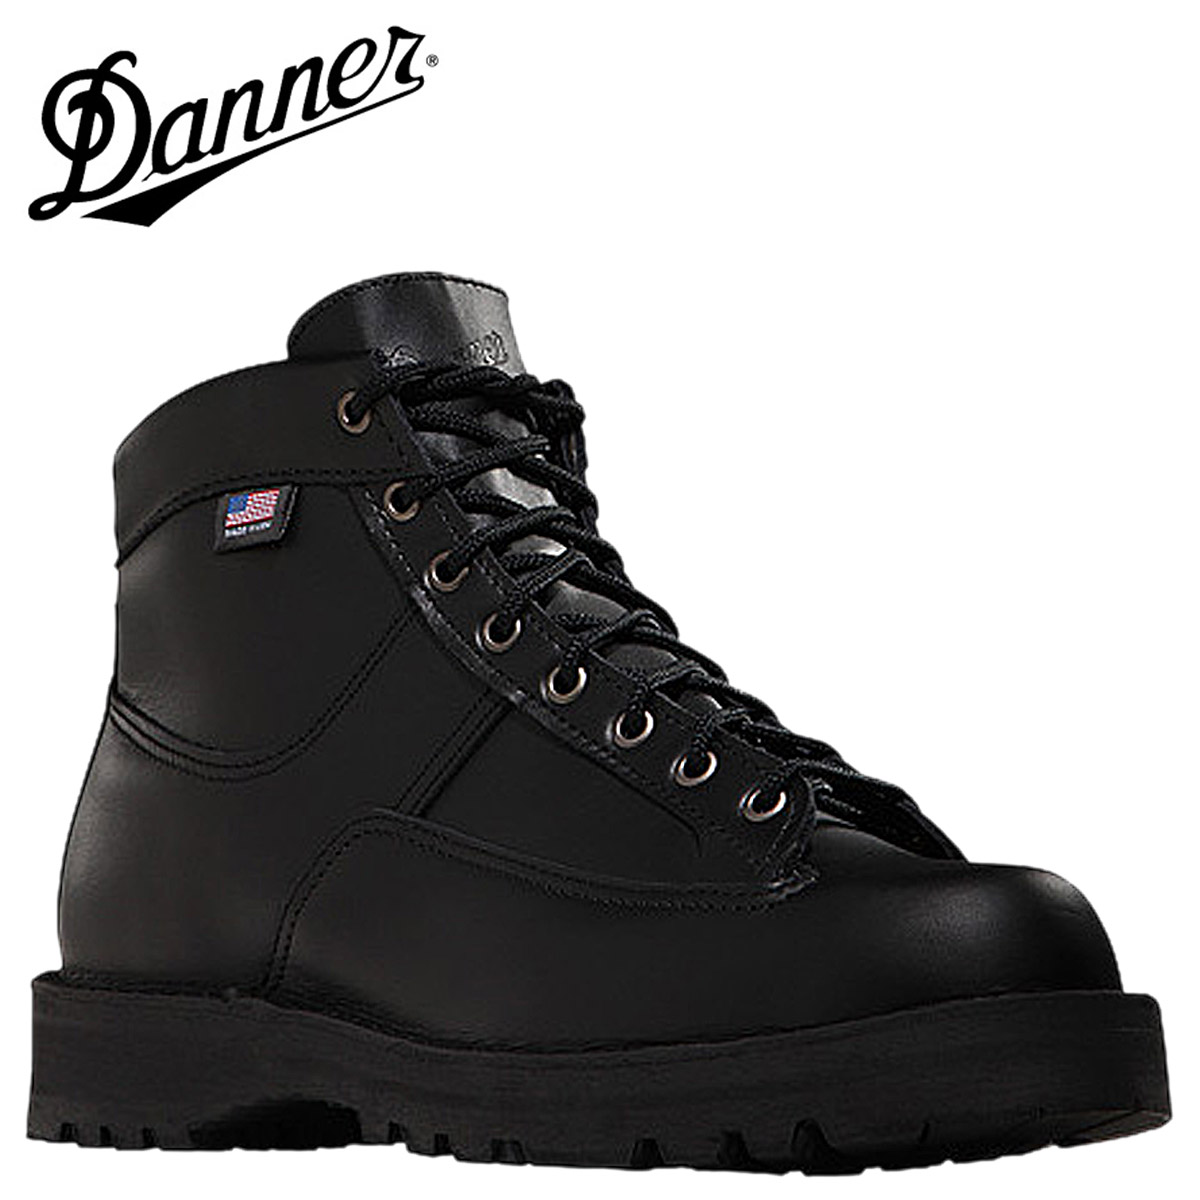 24600 Danner Danner boots BLACK HAWK GORE-TEX leather men